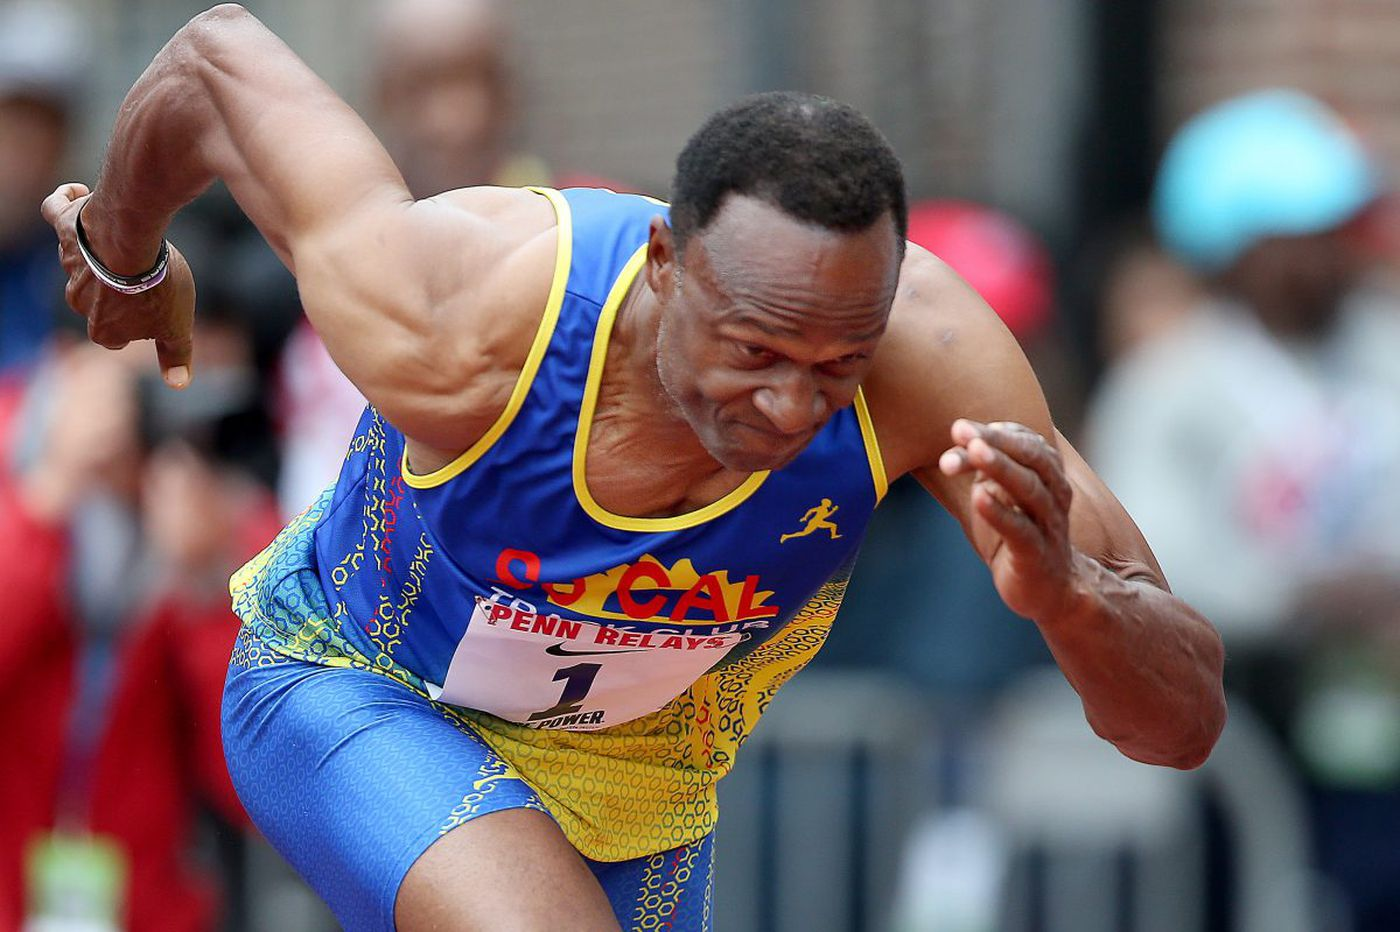 Masters sprinter Willie Gault still going strong at Penn Relays